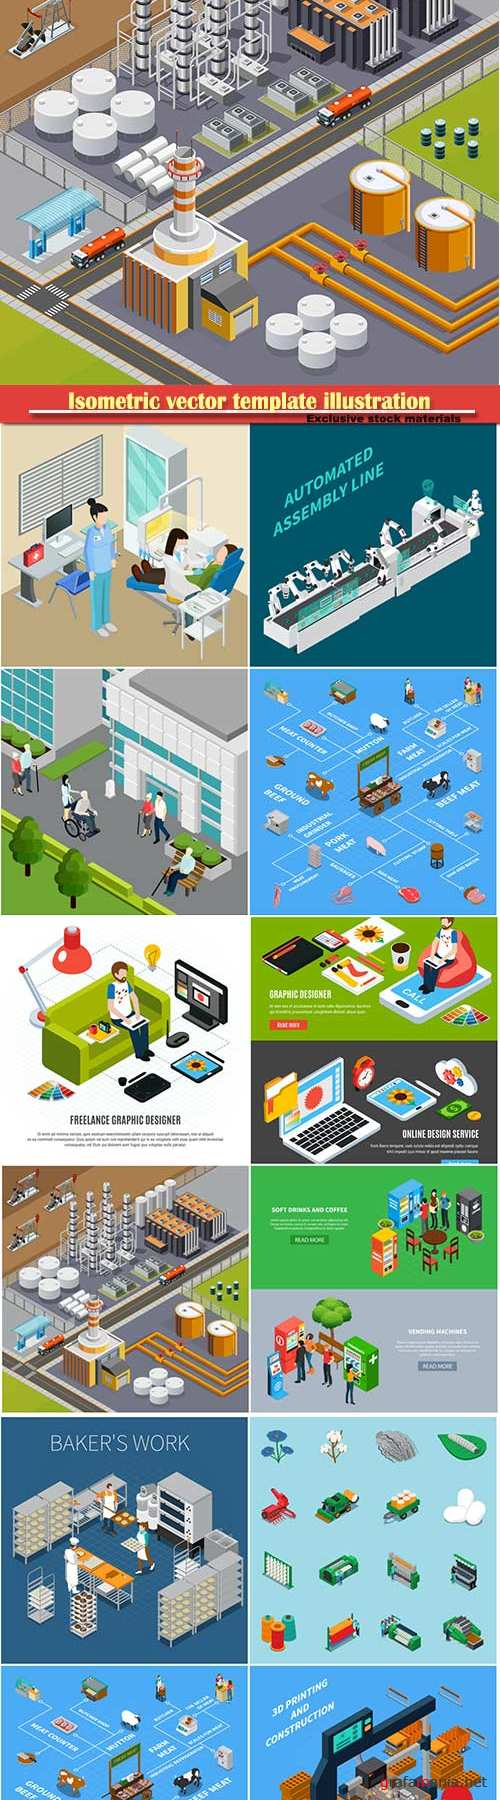 Isometric vector template illustration # 15